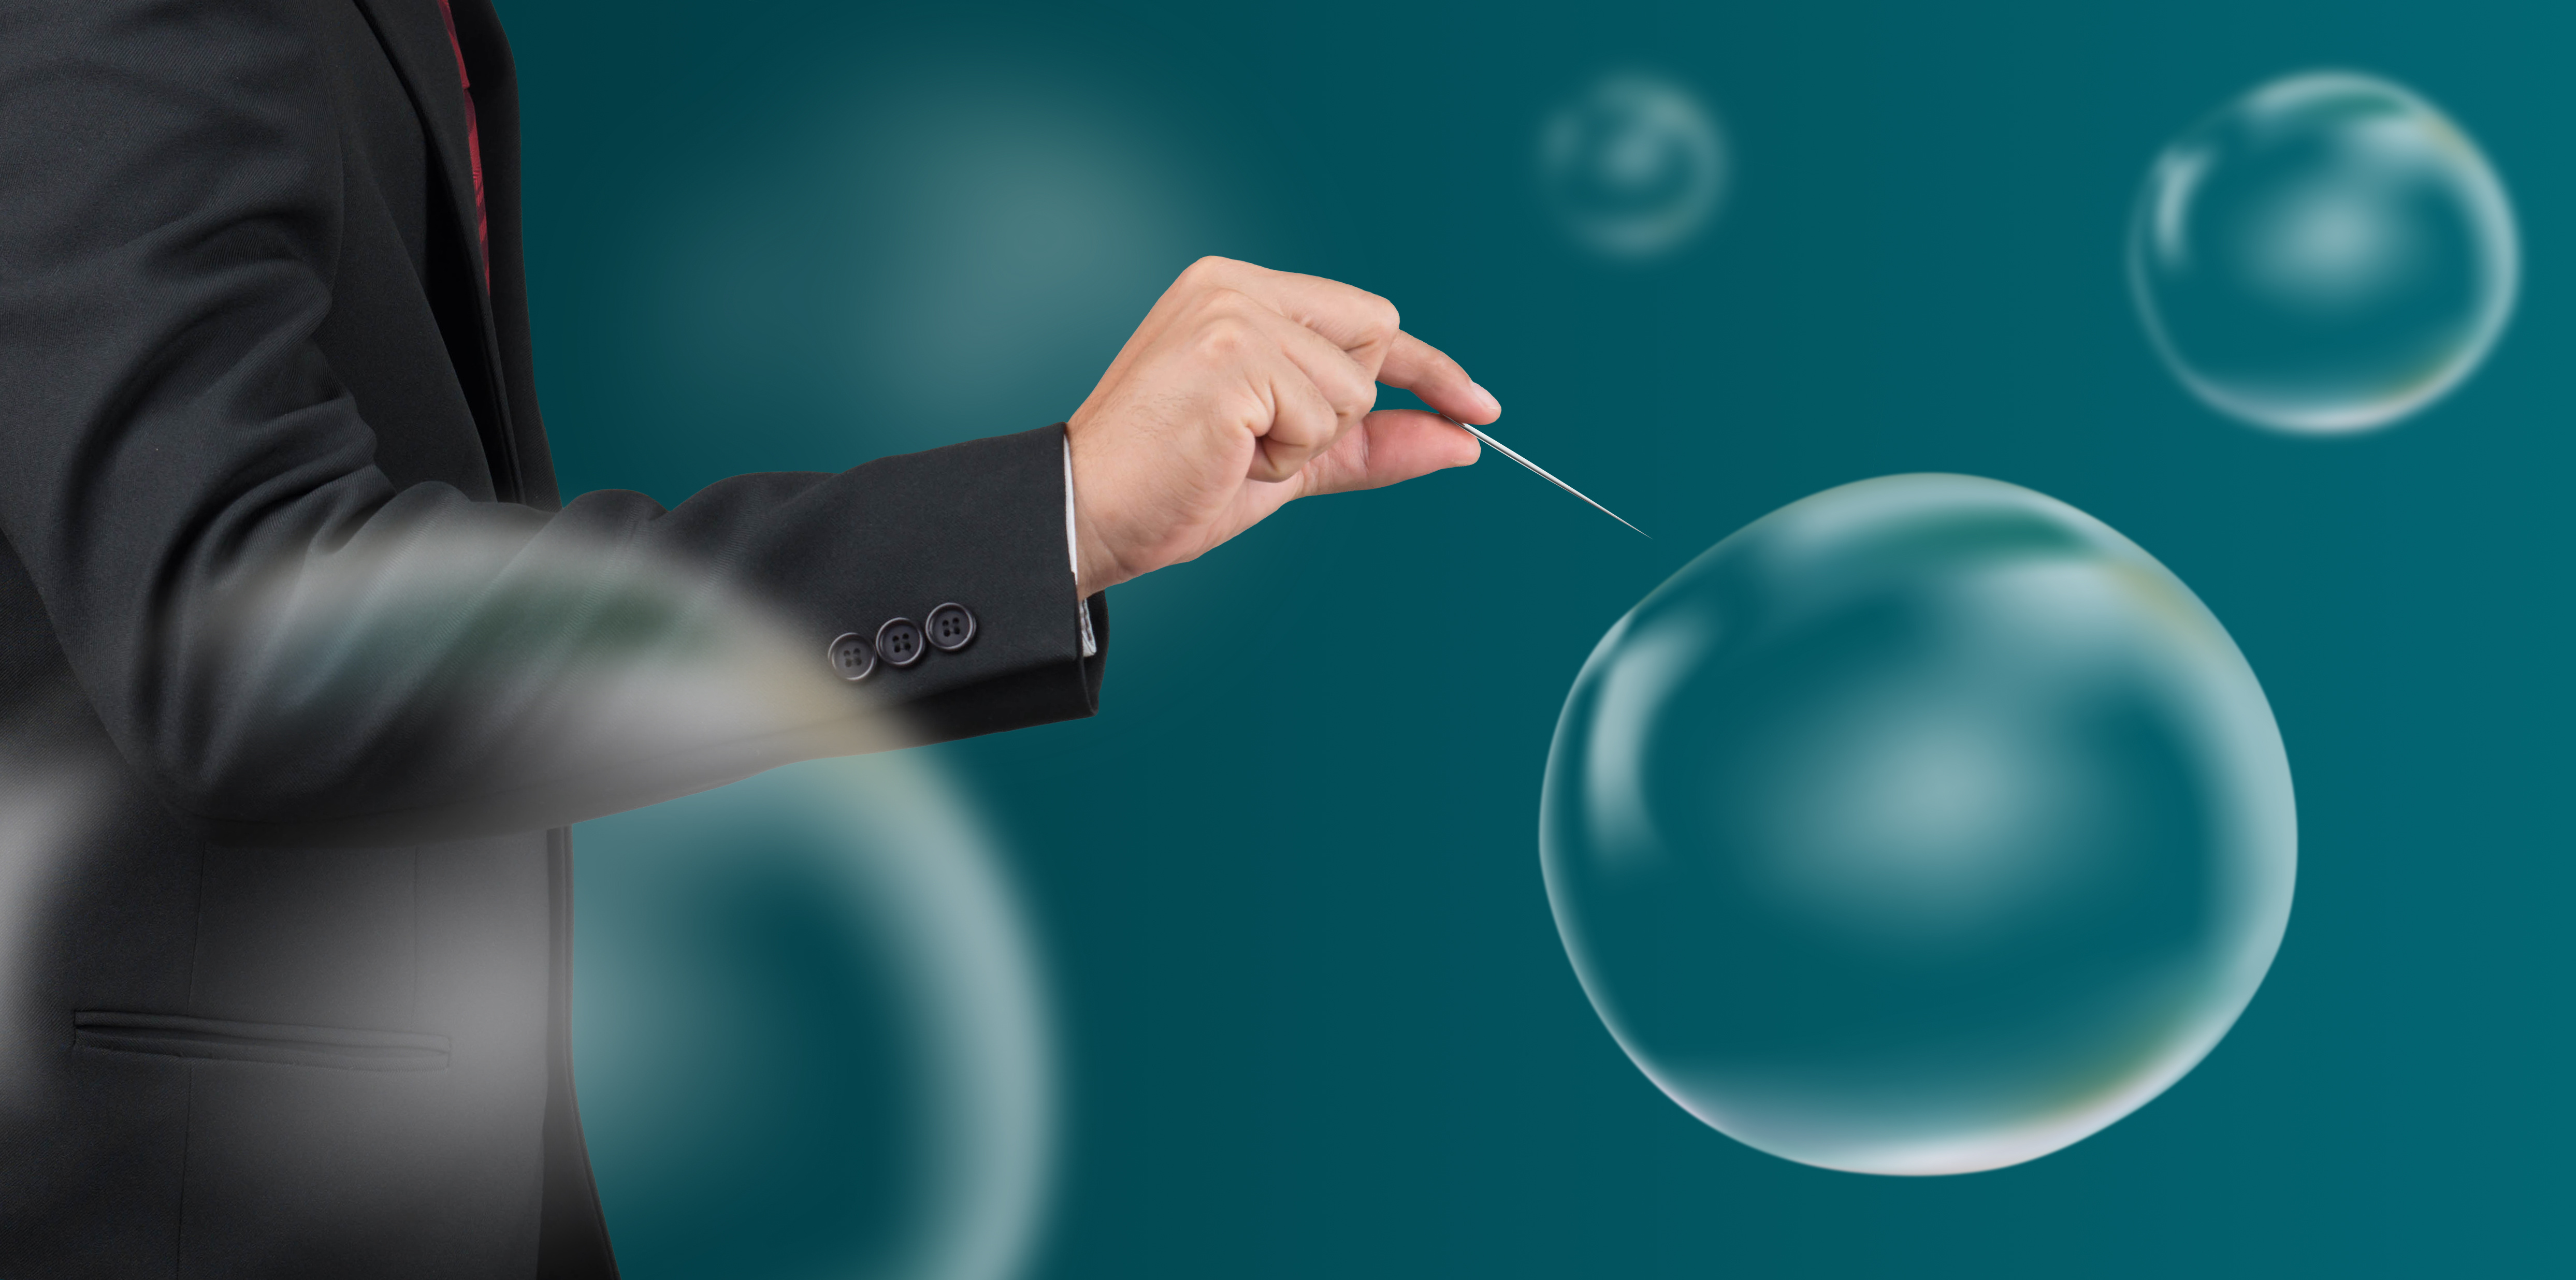 man hold needle stab an empty bubble